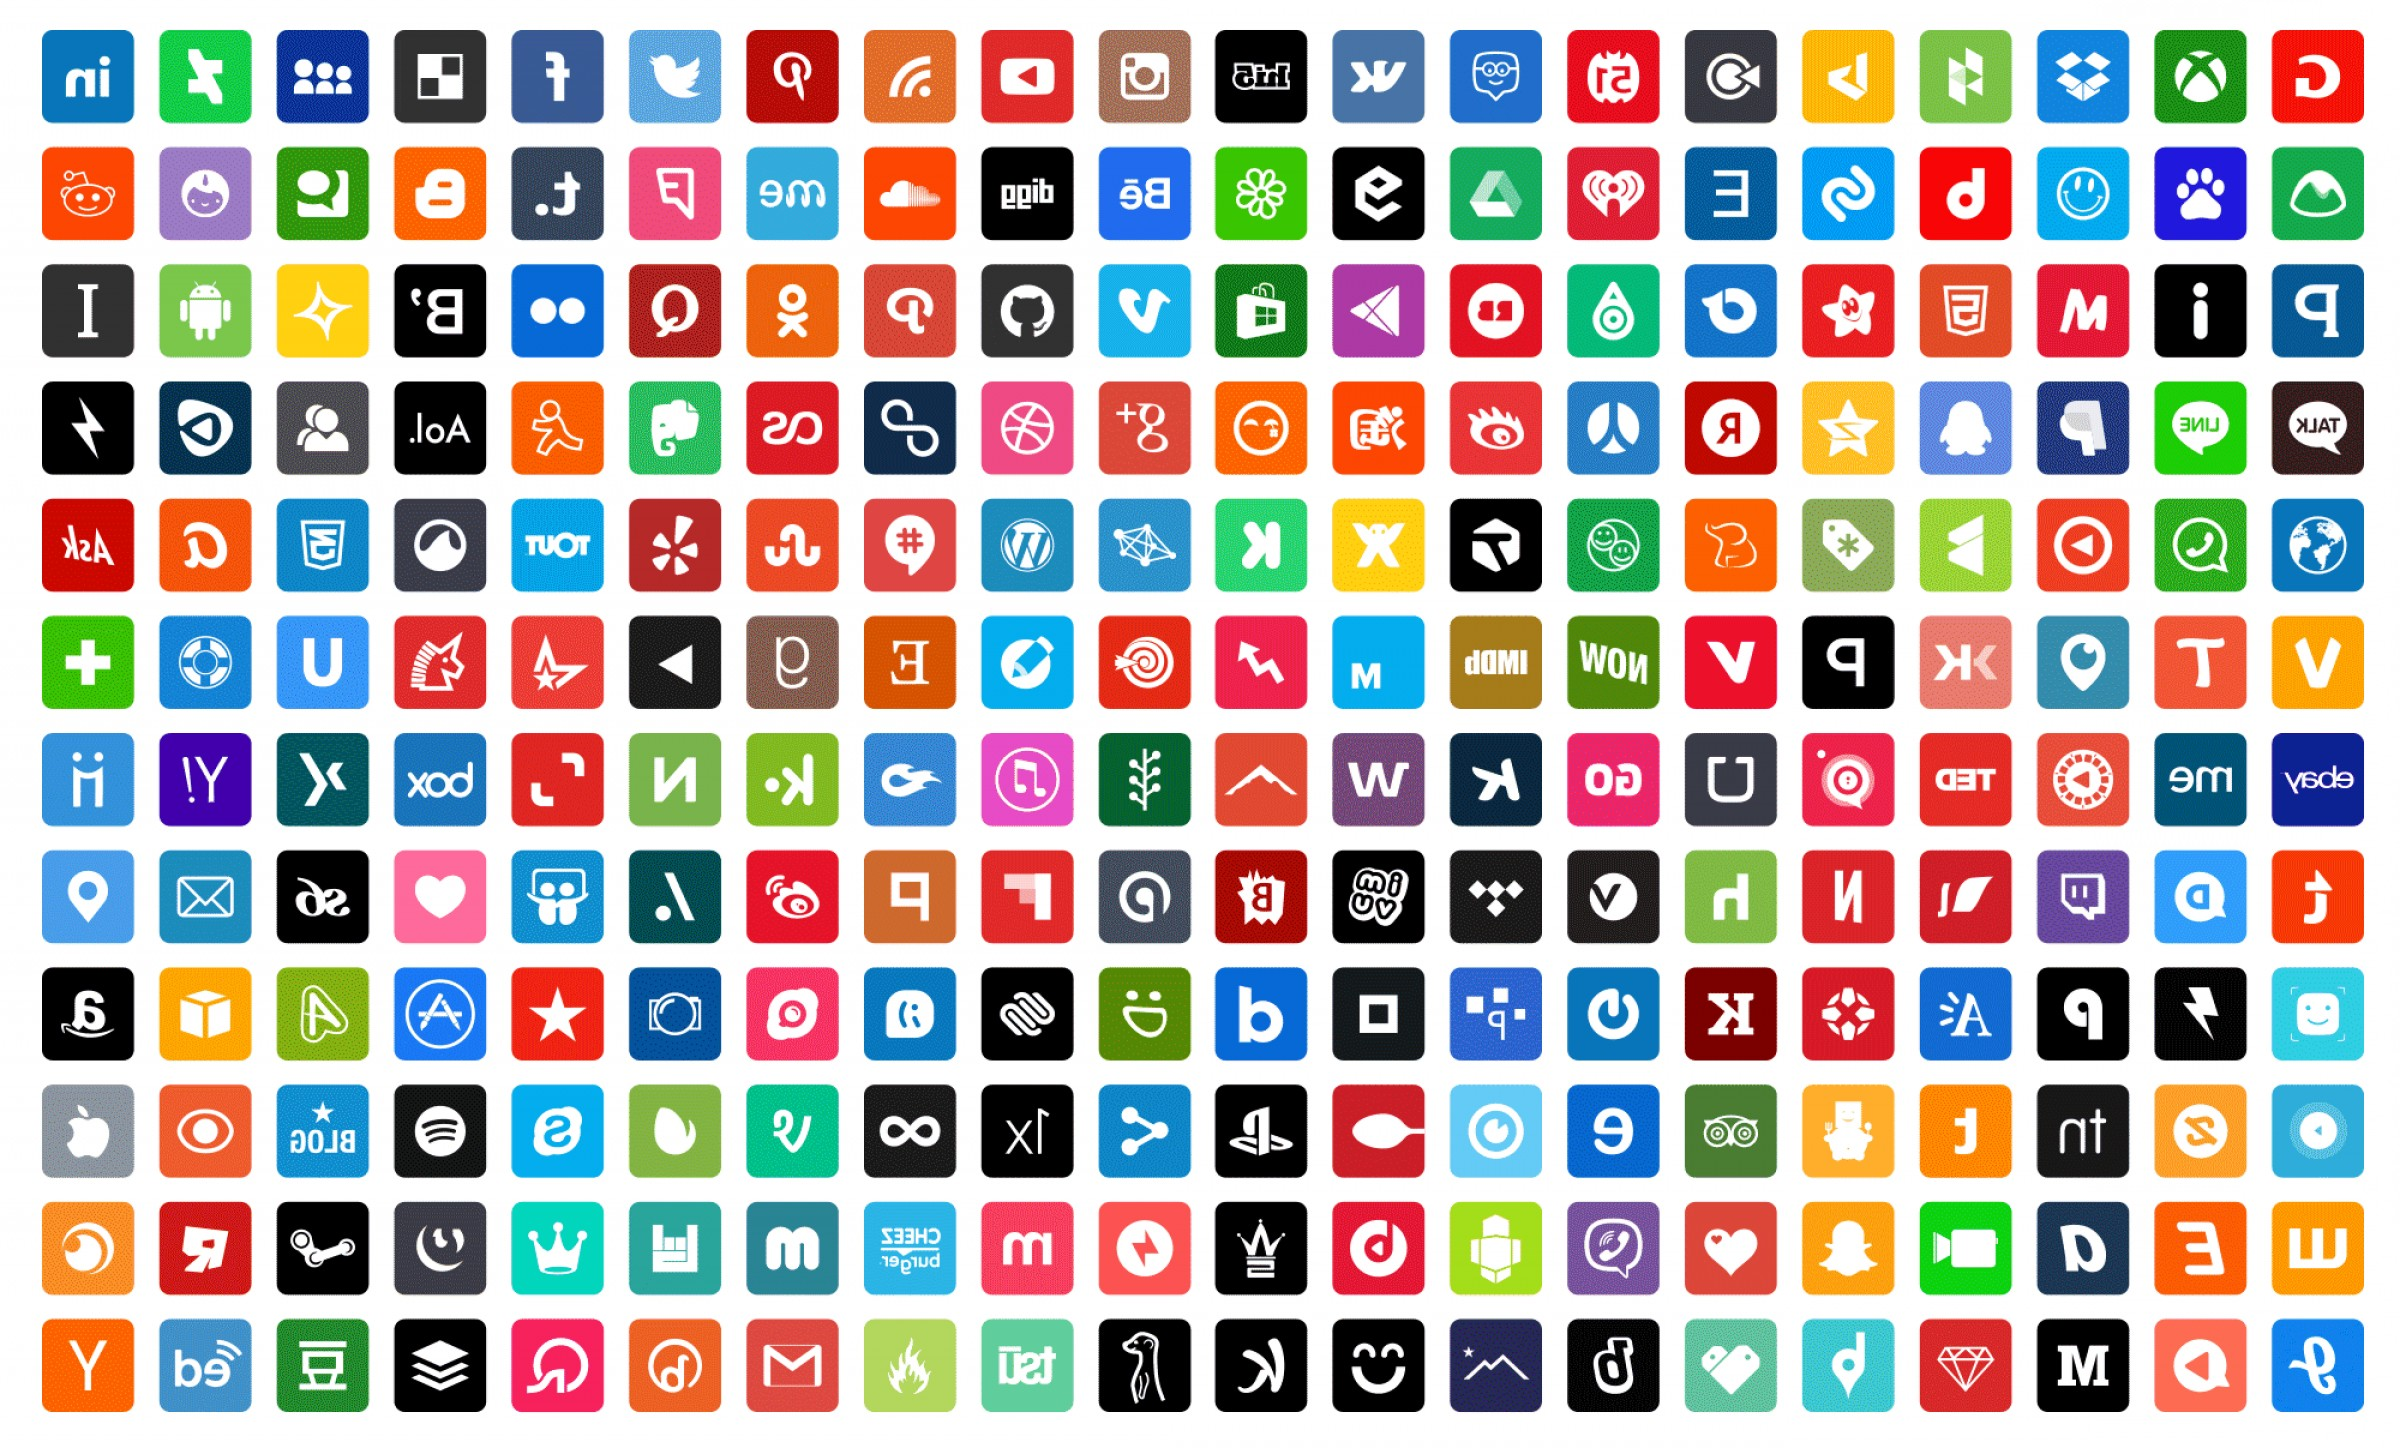 Vector Twitter Icon 2014: Free Social Media Icons Logo Vectors Free Download